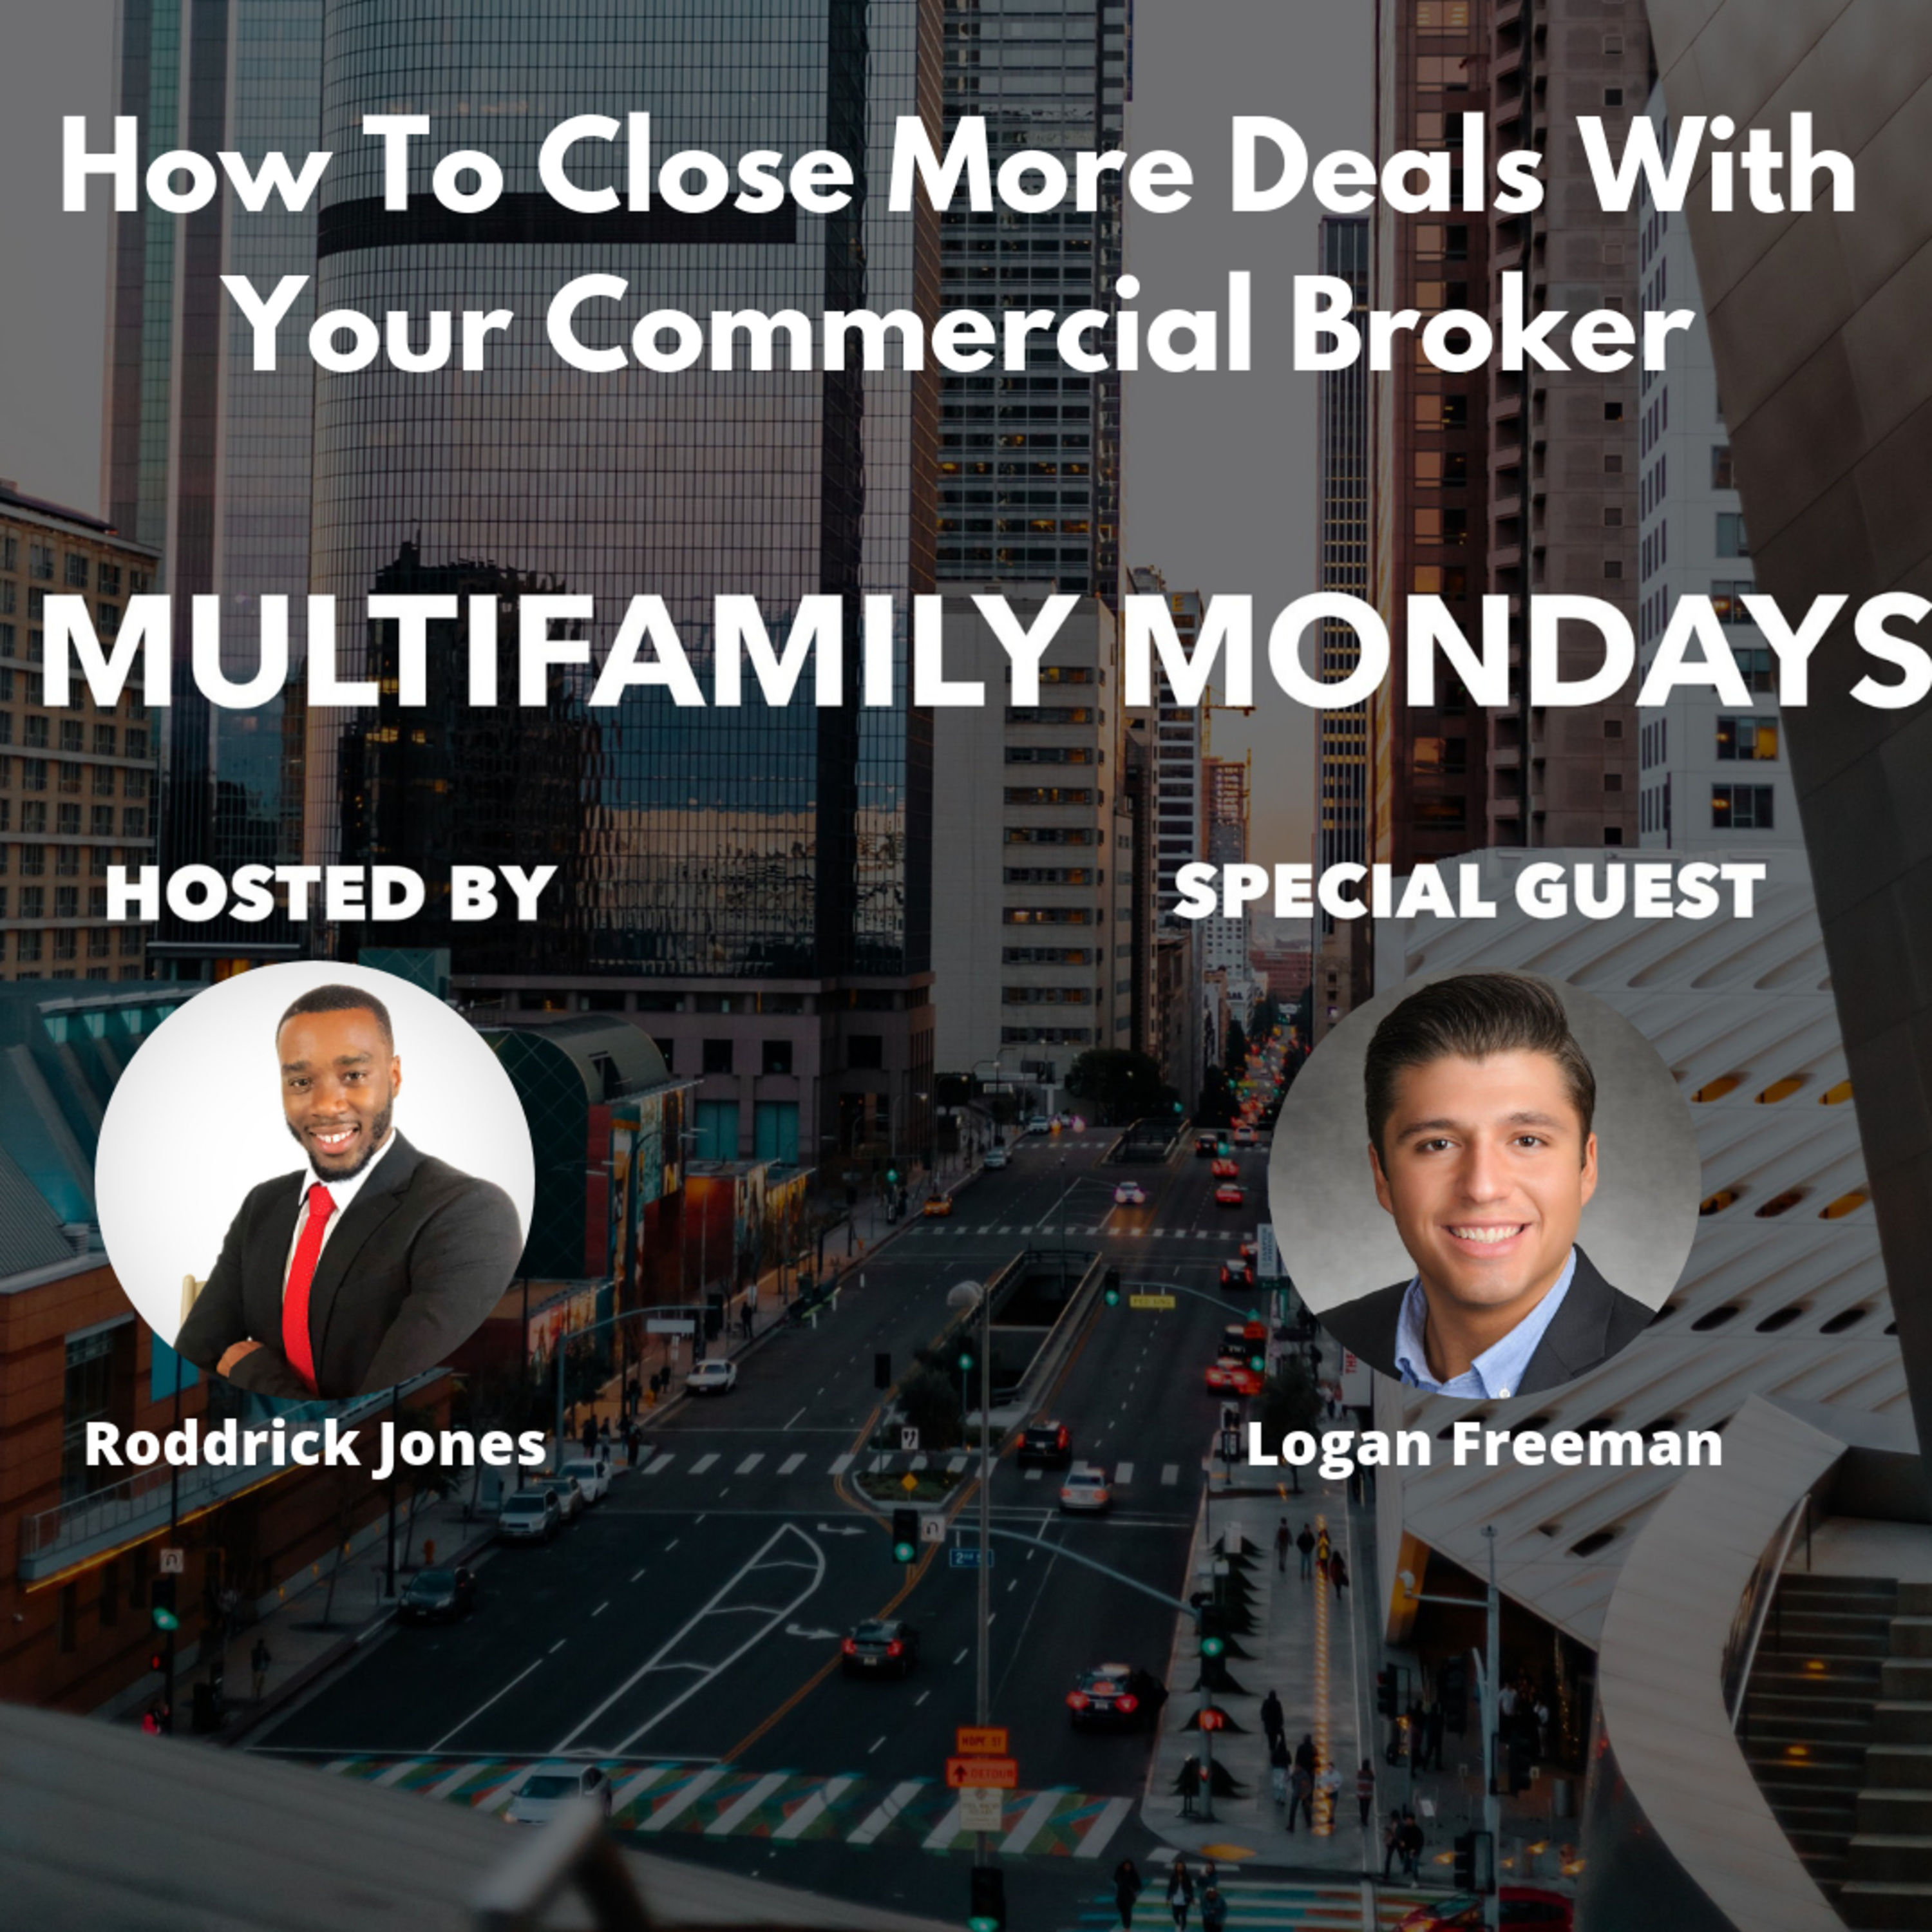 How To Close More Deals With Your Commercial Broker